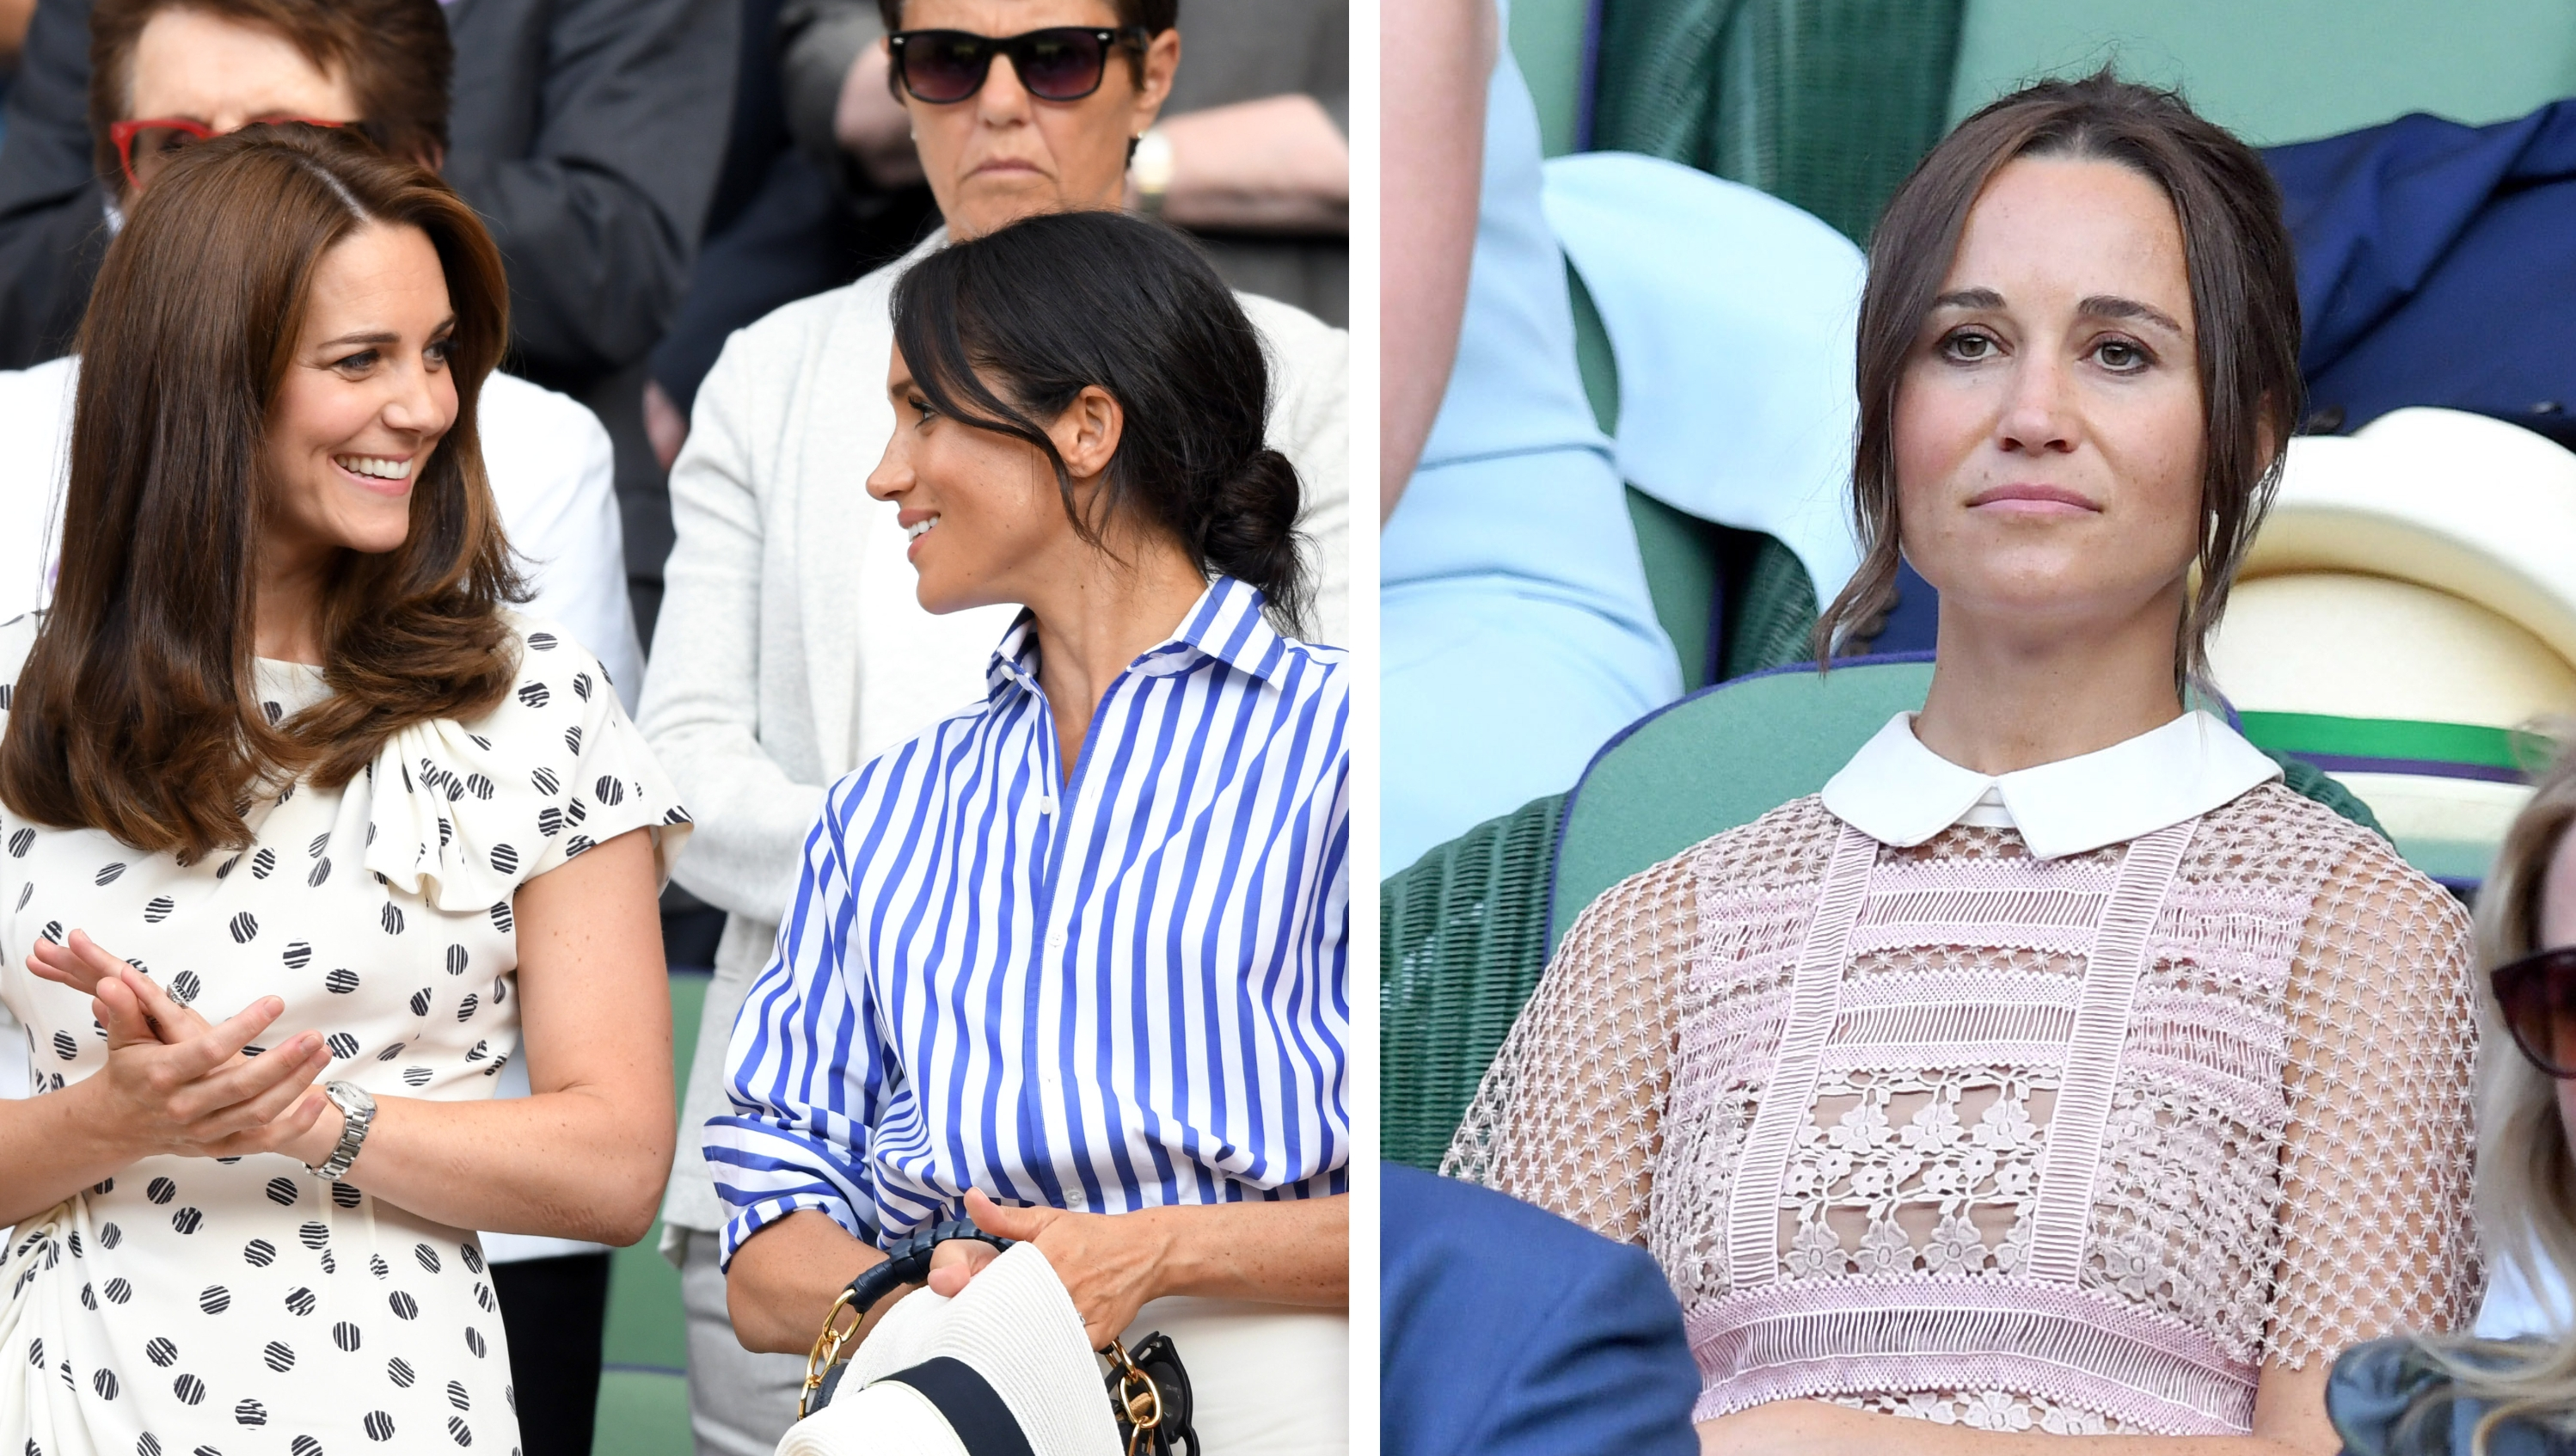 Kate Middleton, Meghan Markle, Tennis Match, Split, Pippa Middleton, Frowning